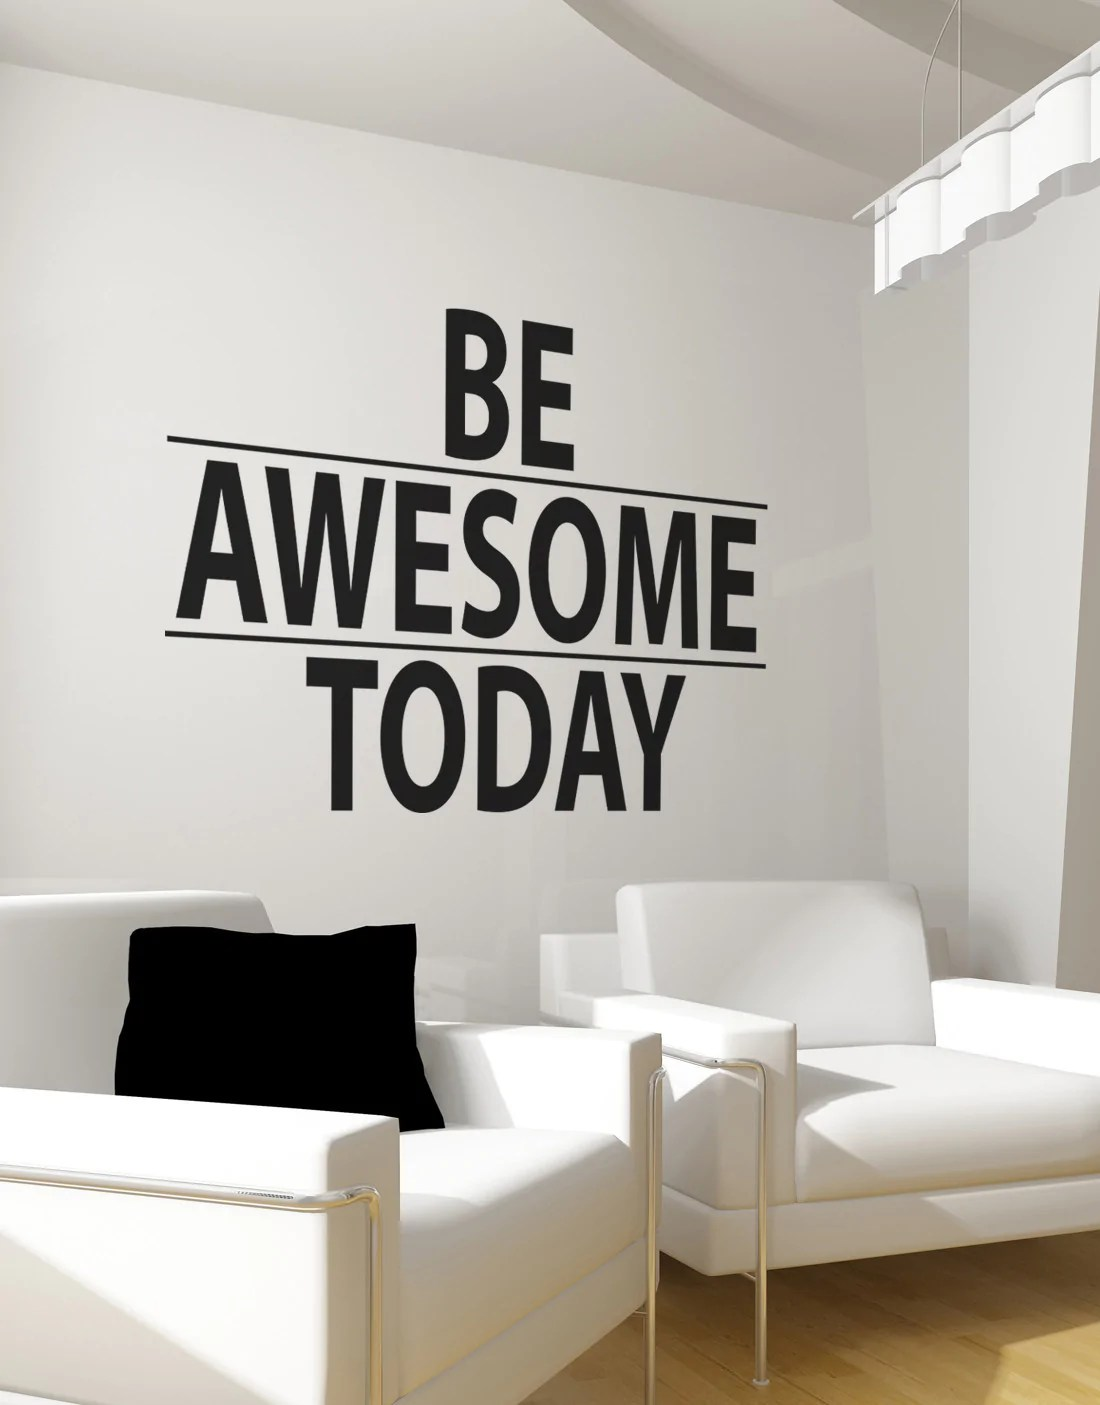 Be Awesome Today Motivational Quote Wall Decal Sticker 6013